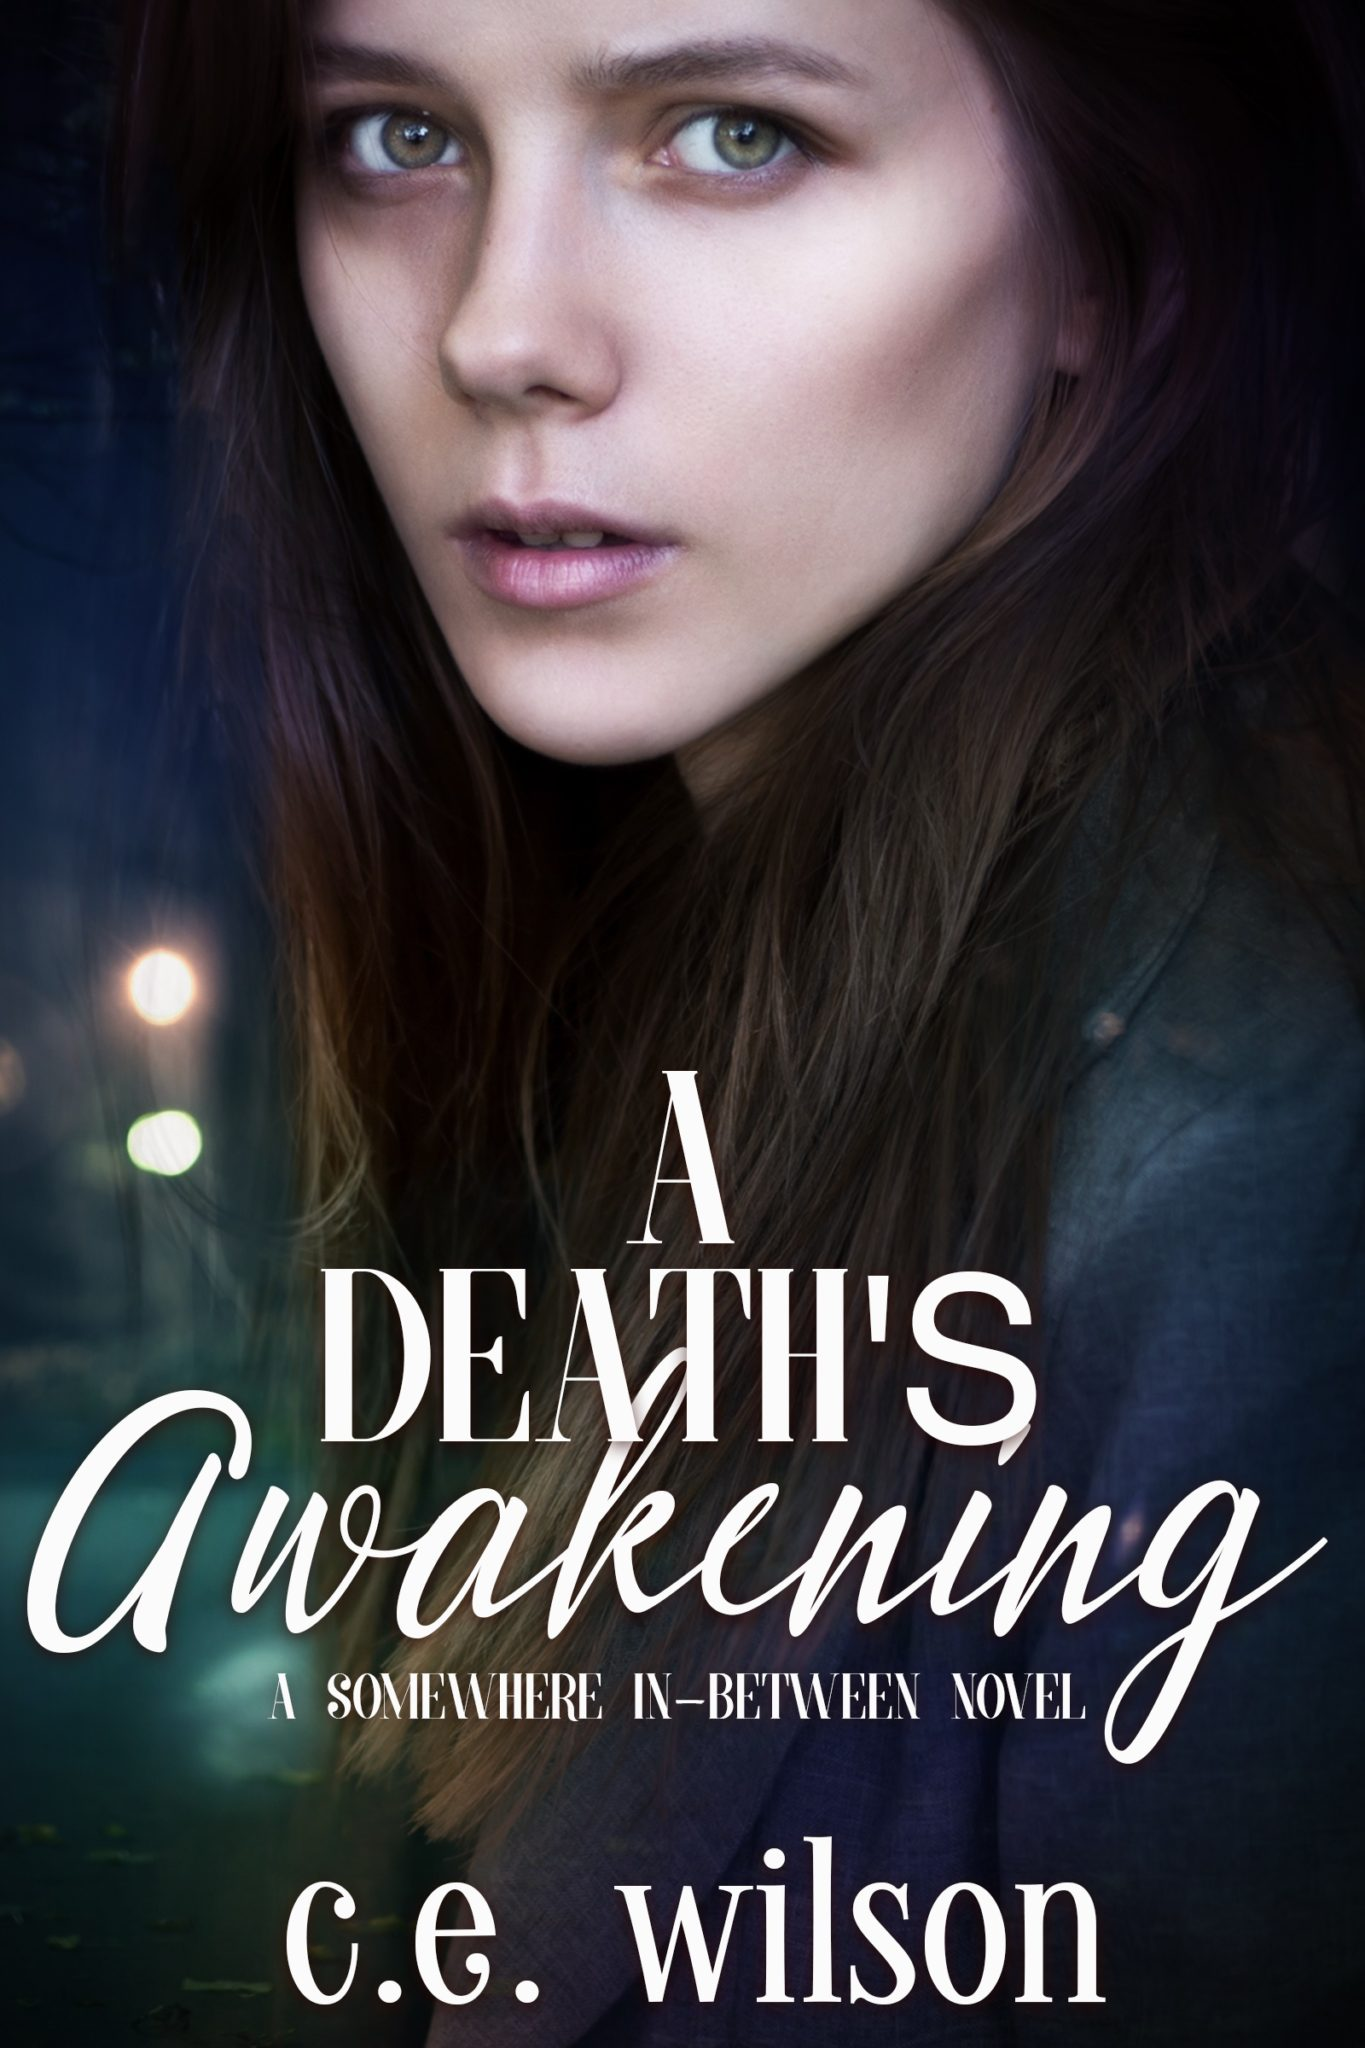 A Death's Awakening by C.E. Wilson